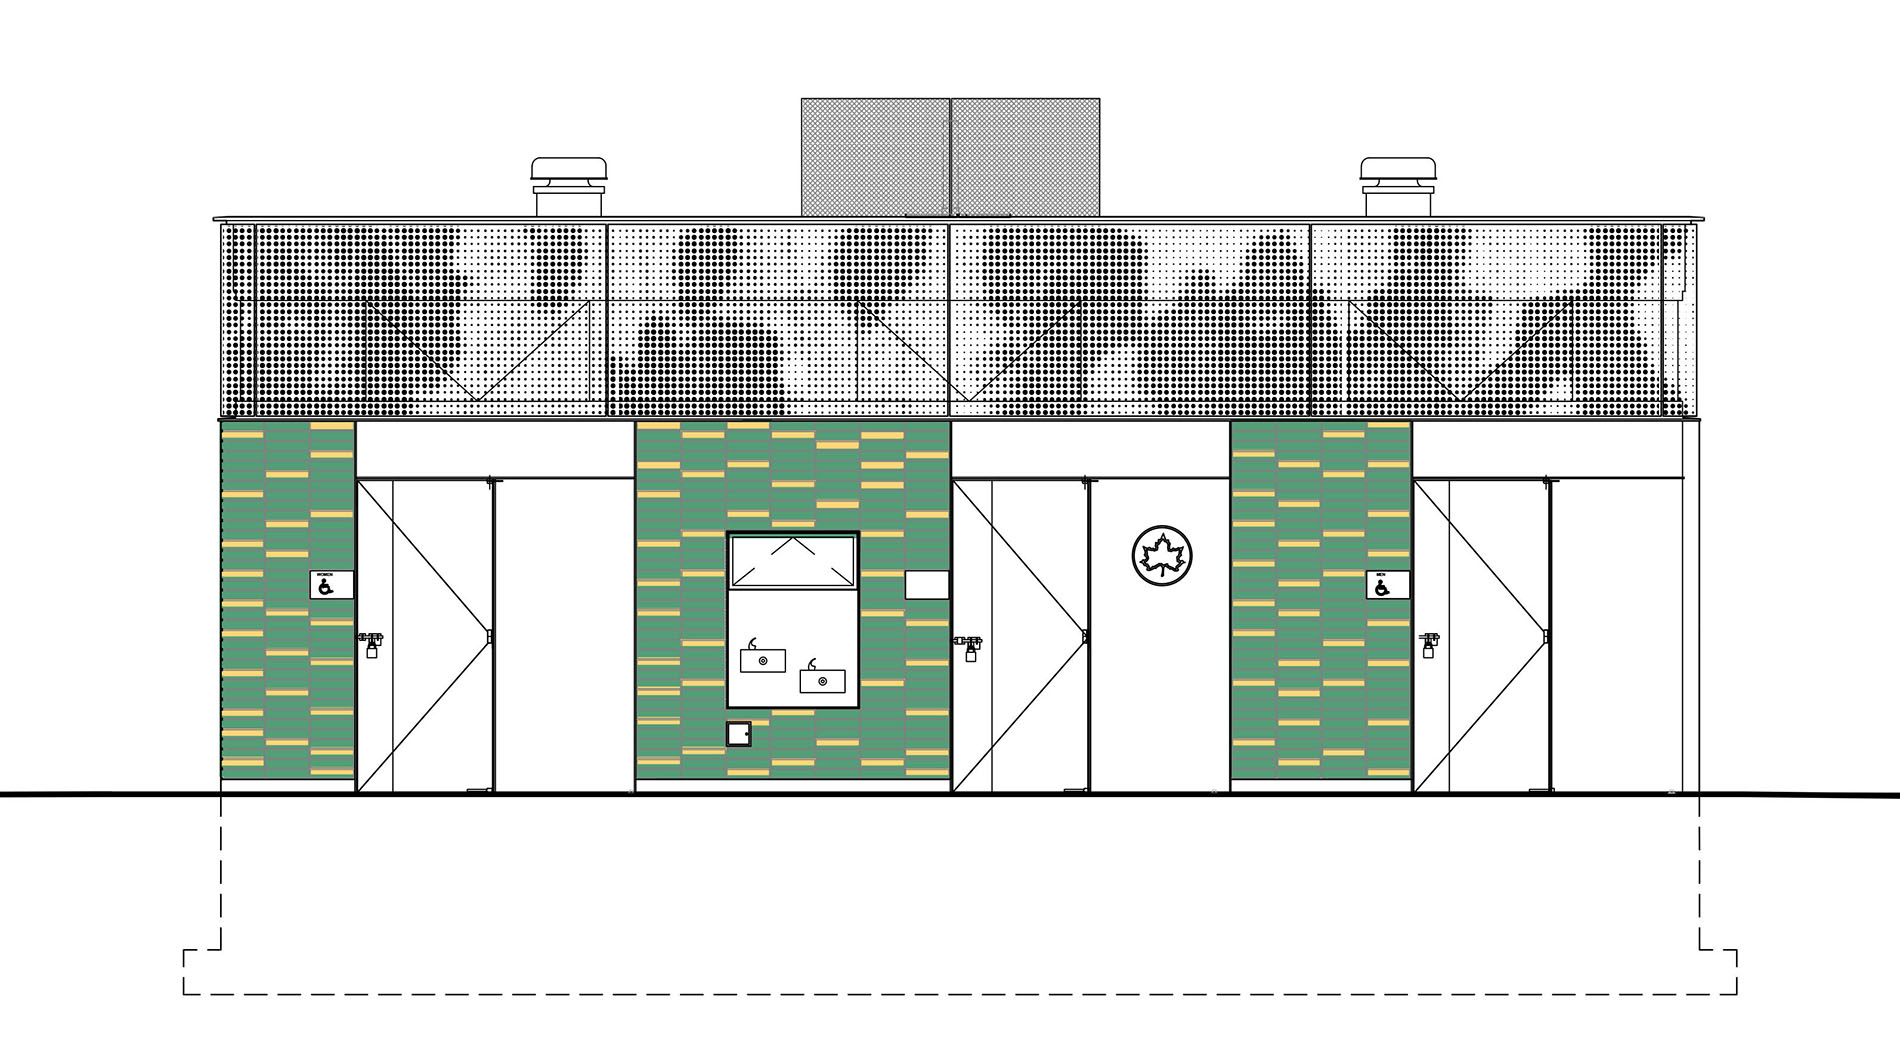 Design of Betsy Head Park Comfort Station Construction